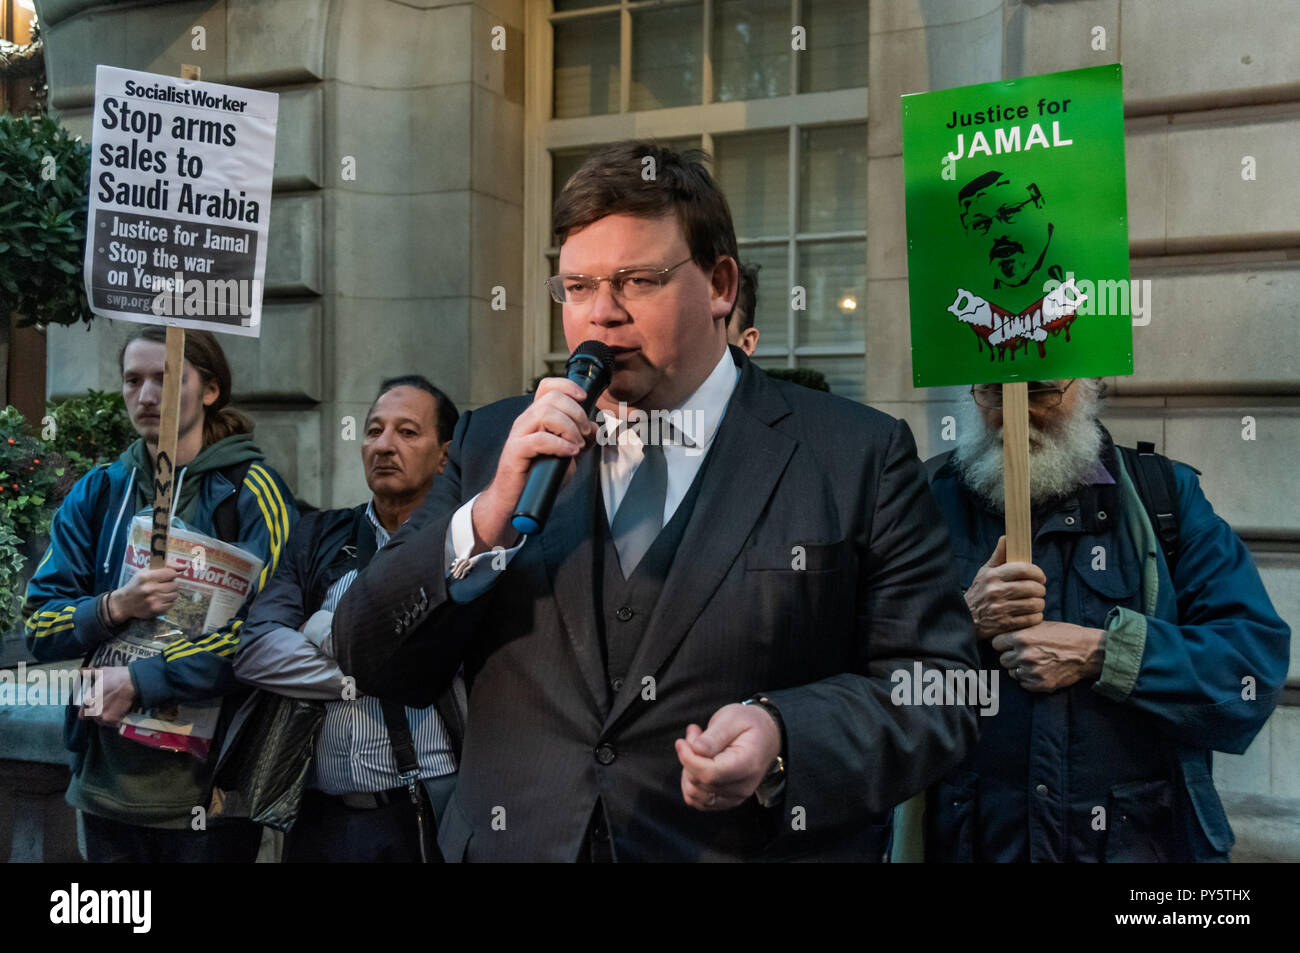 October 25, 2018 - London, UK. 25 October 2018. Barrister Ben Keith speaks at the protest outside the Saudi Embassy in London calling for all those responsible for the horrific murder and dismembering of journalist Jamal Khashoggi, including Saudi crown prince Mohammed bin Salman who is thought to have approved sending the death squad to the consulate in the Turkish city of Istanbul, to be brought to justice. The protest, called by the Arab Organisation of Human Rights, the Stop the War Coalition the Bahrain Institute for Rights and Democracy and Global Rights Watch, also demanded an end to th - Stock Image